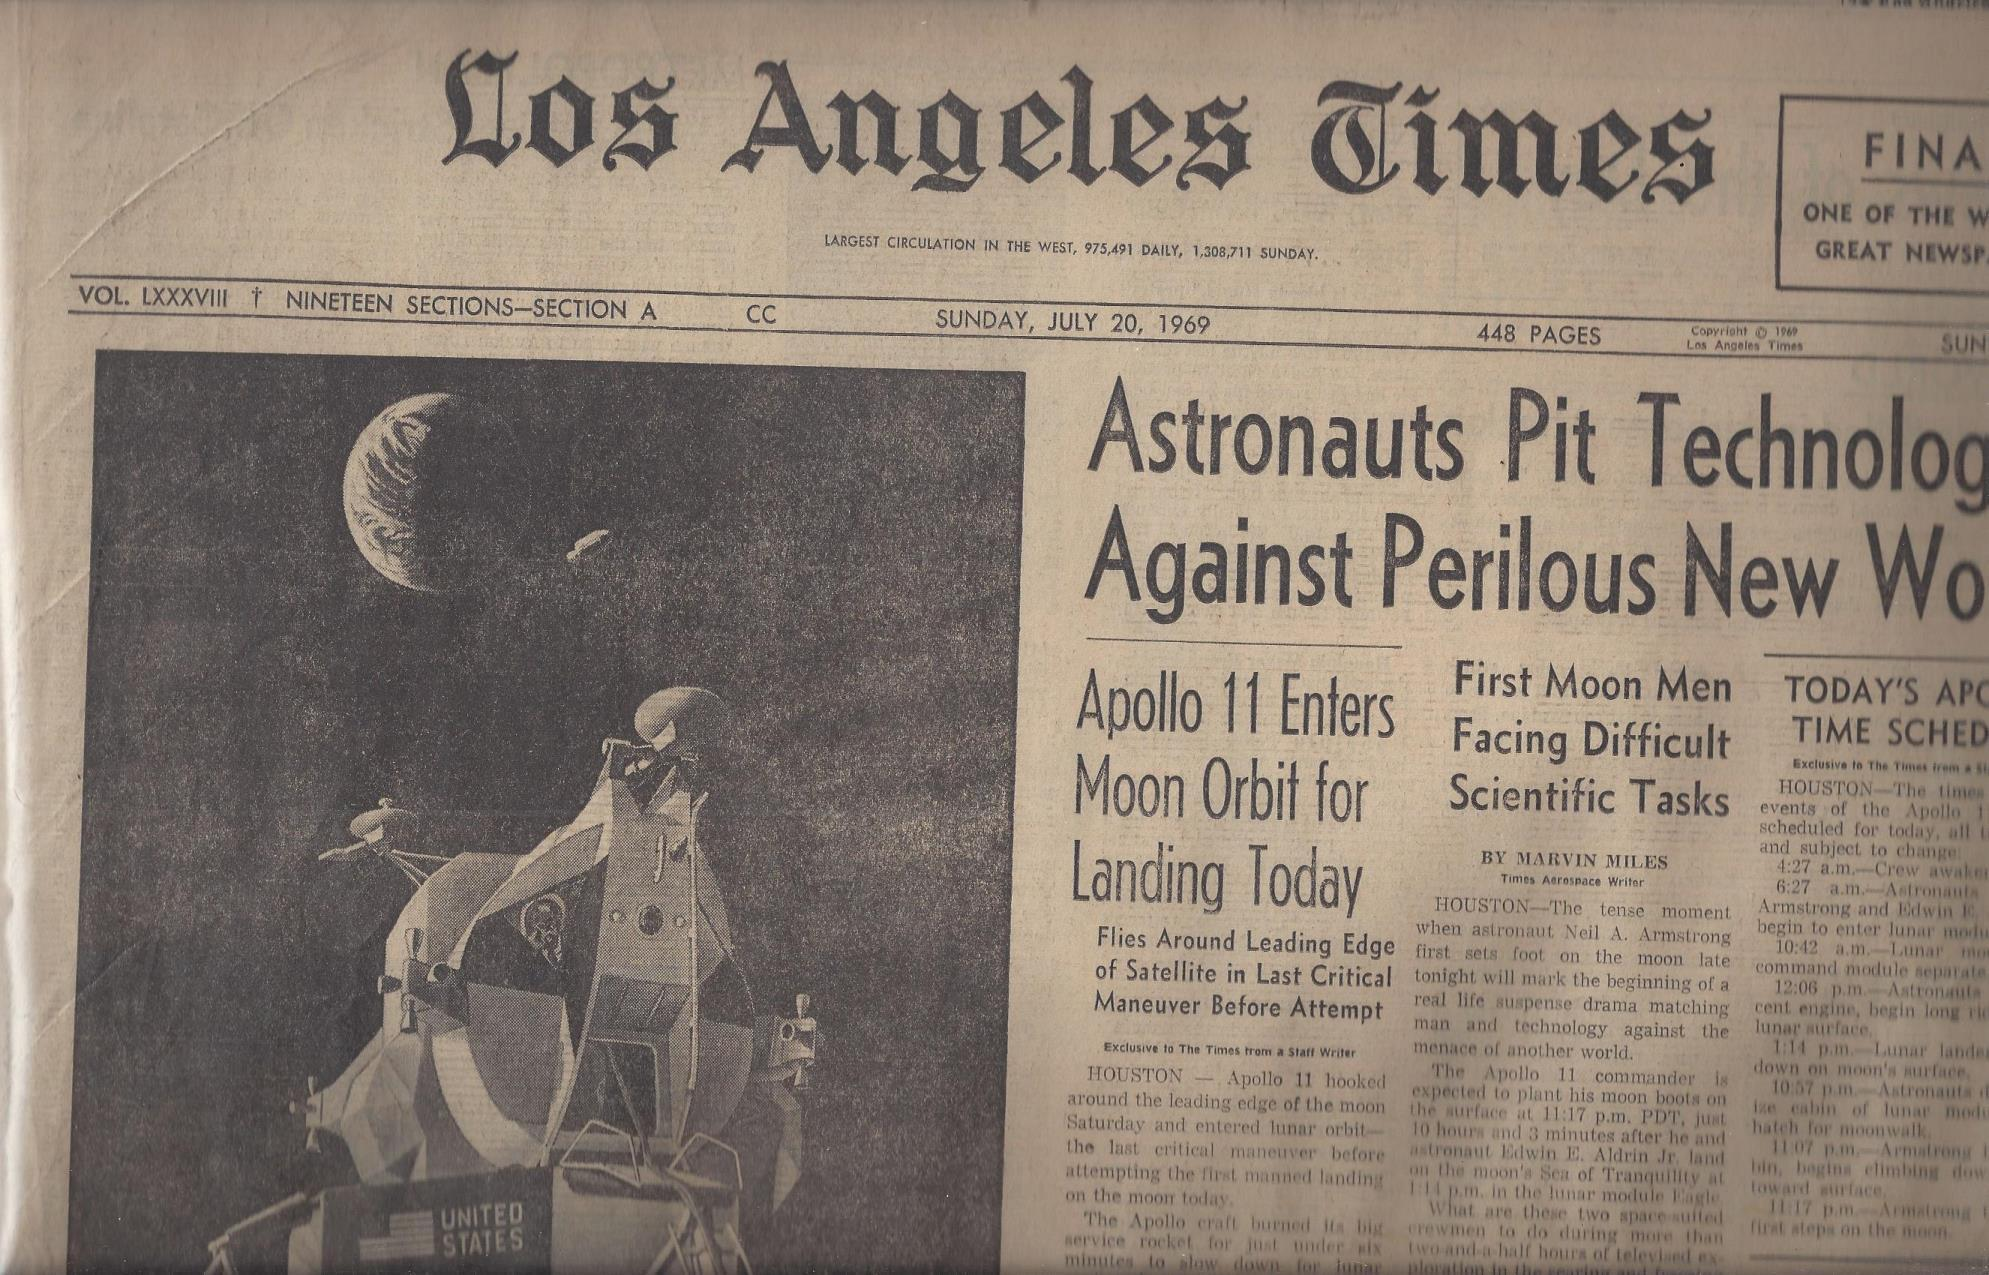 "Los Angeles Times: ""Astronauts Pit Technology Against Perilous New World"" (Sunday, July 20, 1969), Los Angeles Times"